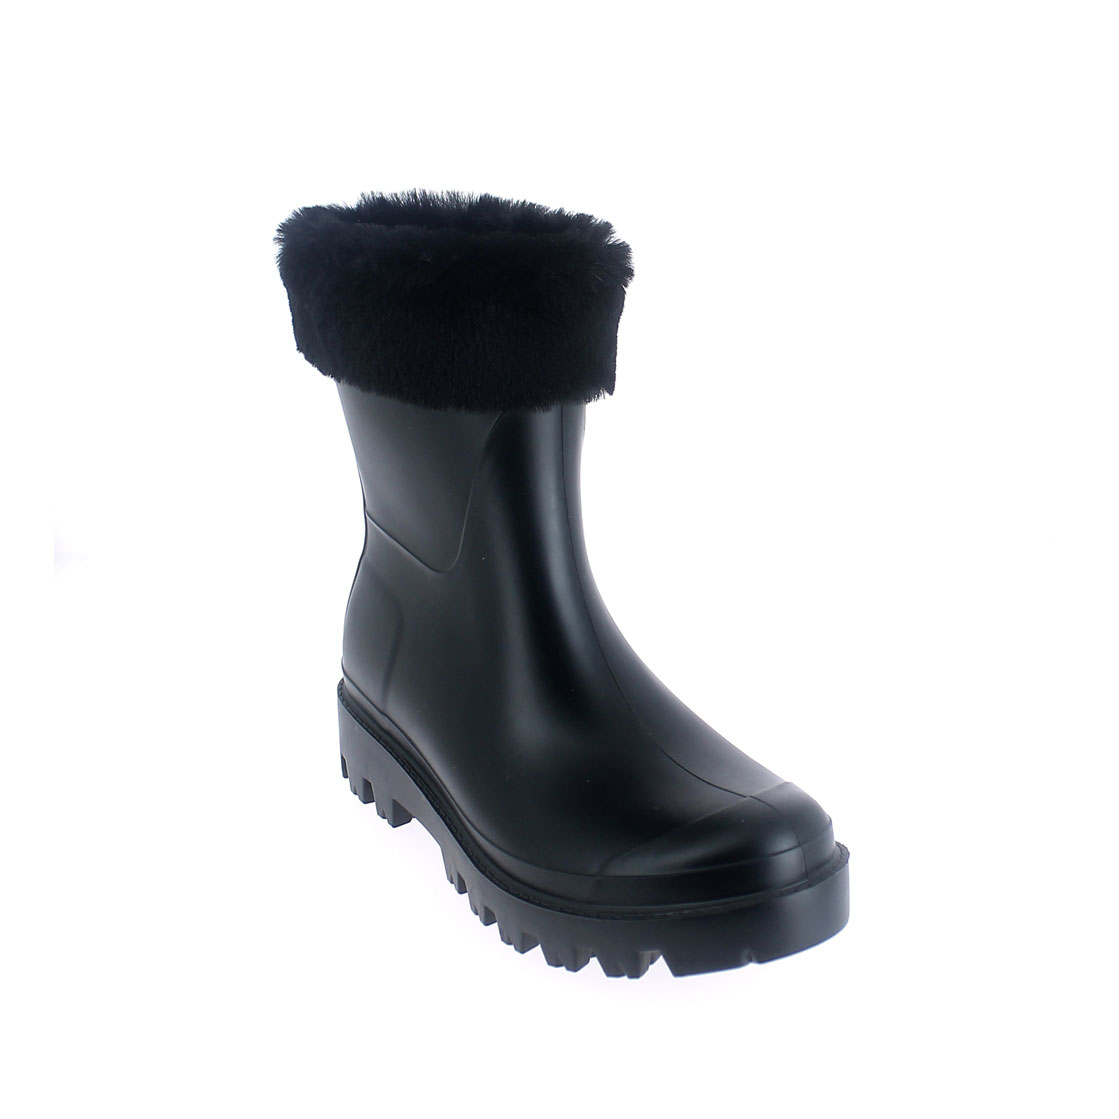 Wellington low boot in Black pvc with inner lining and cuff